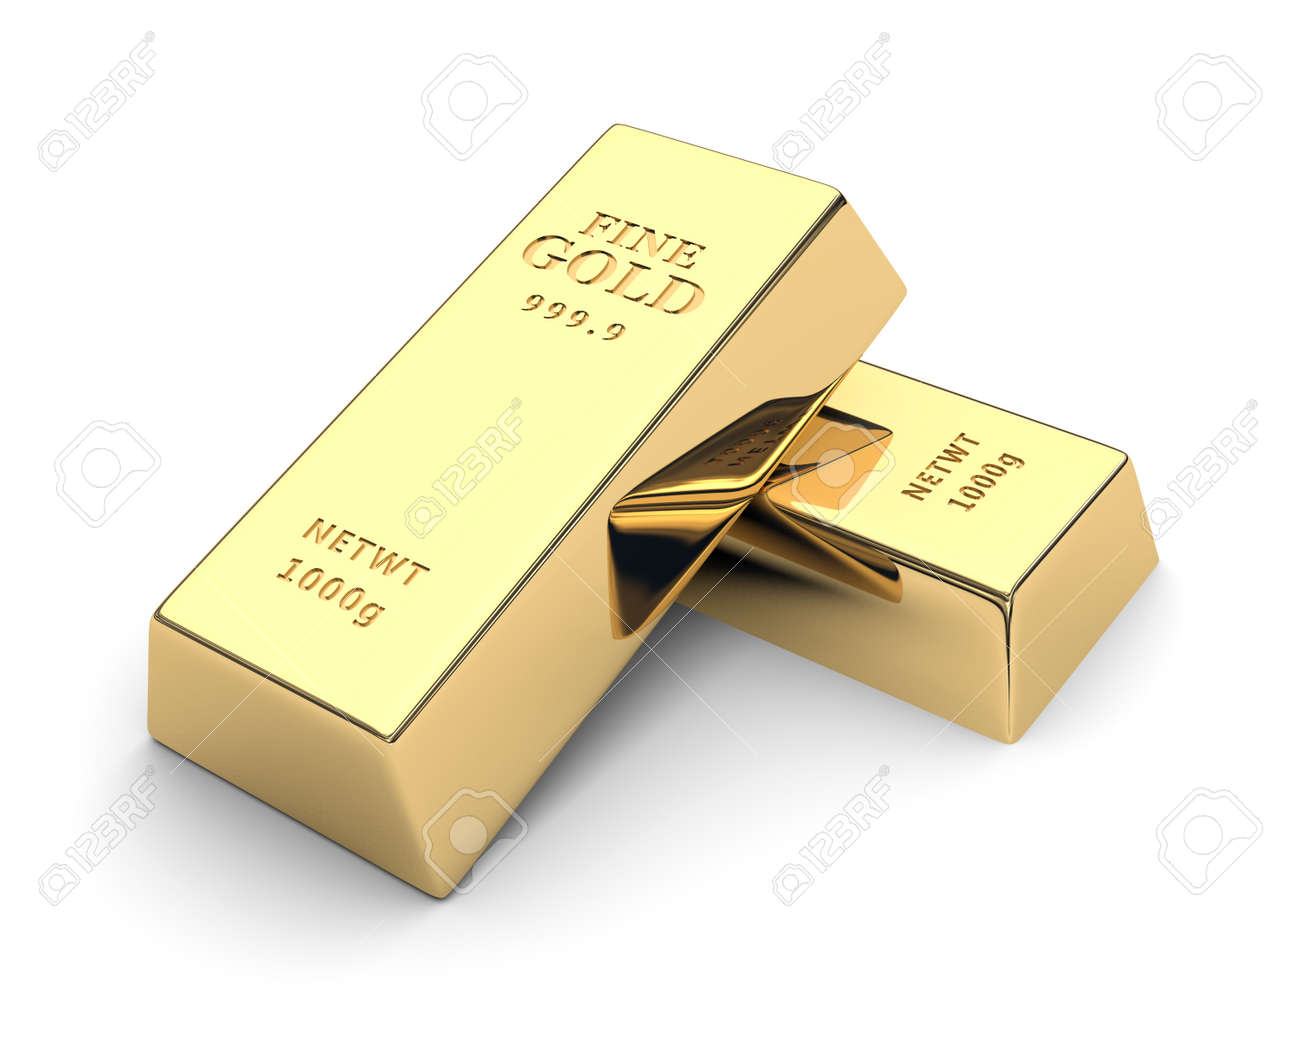 Shiny gold bars isolated on a white   3d image Stock Photo - 17742526